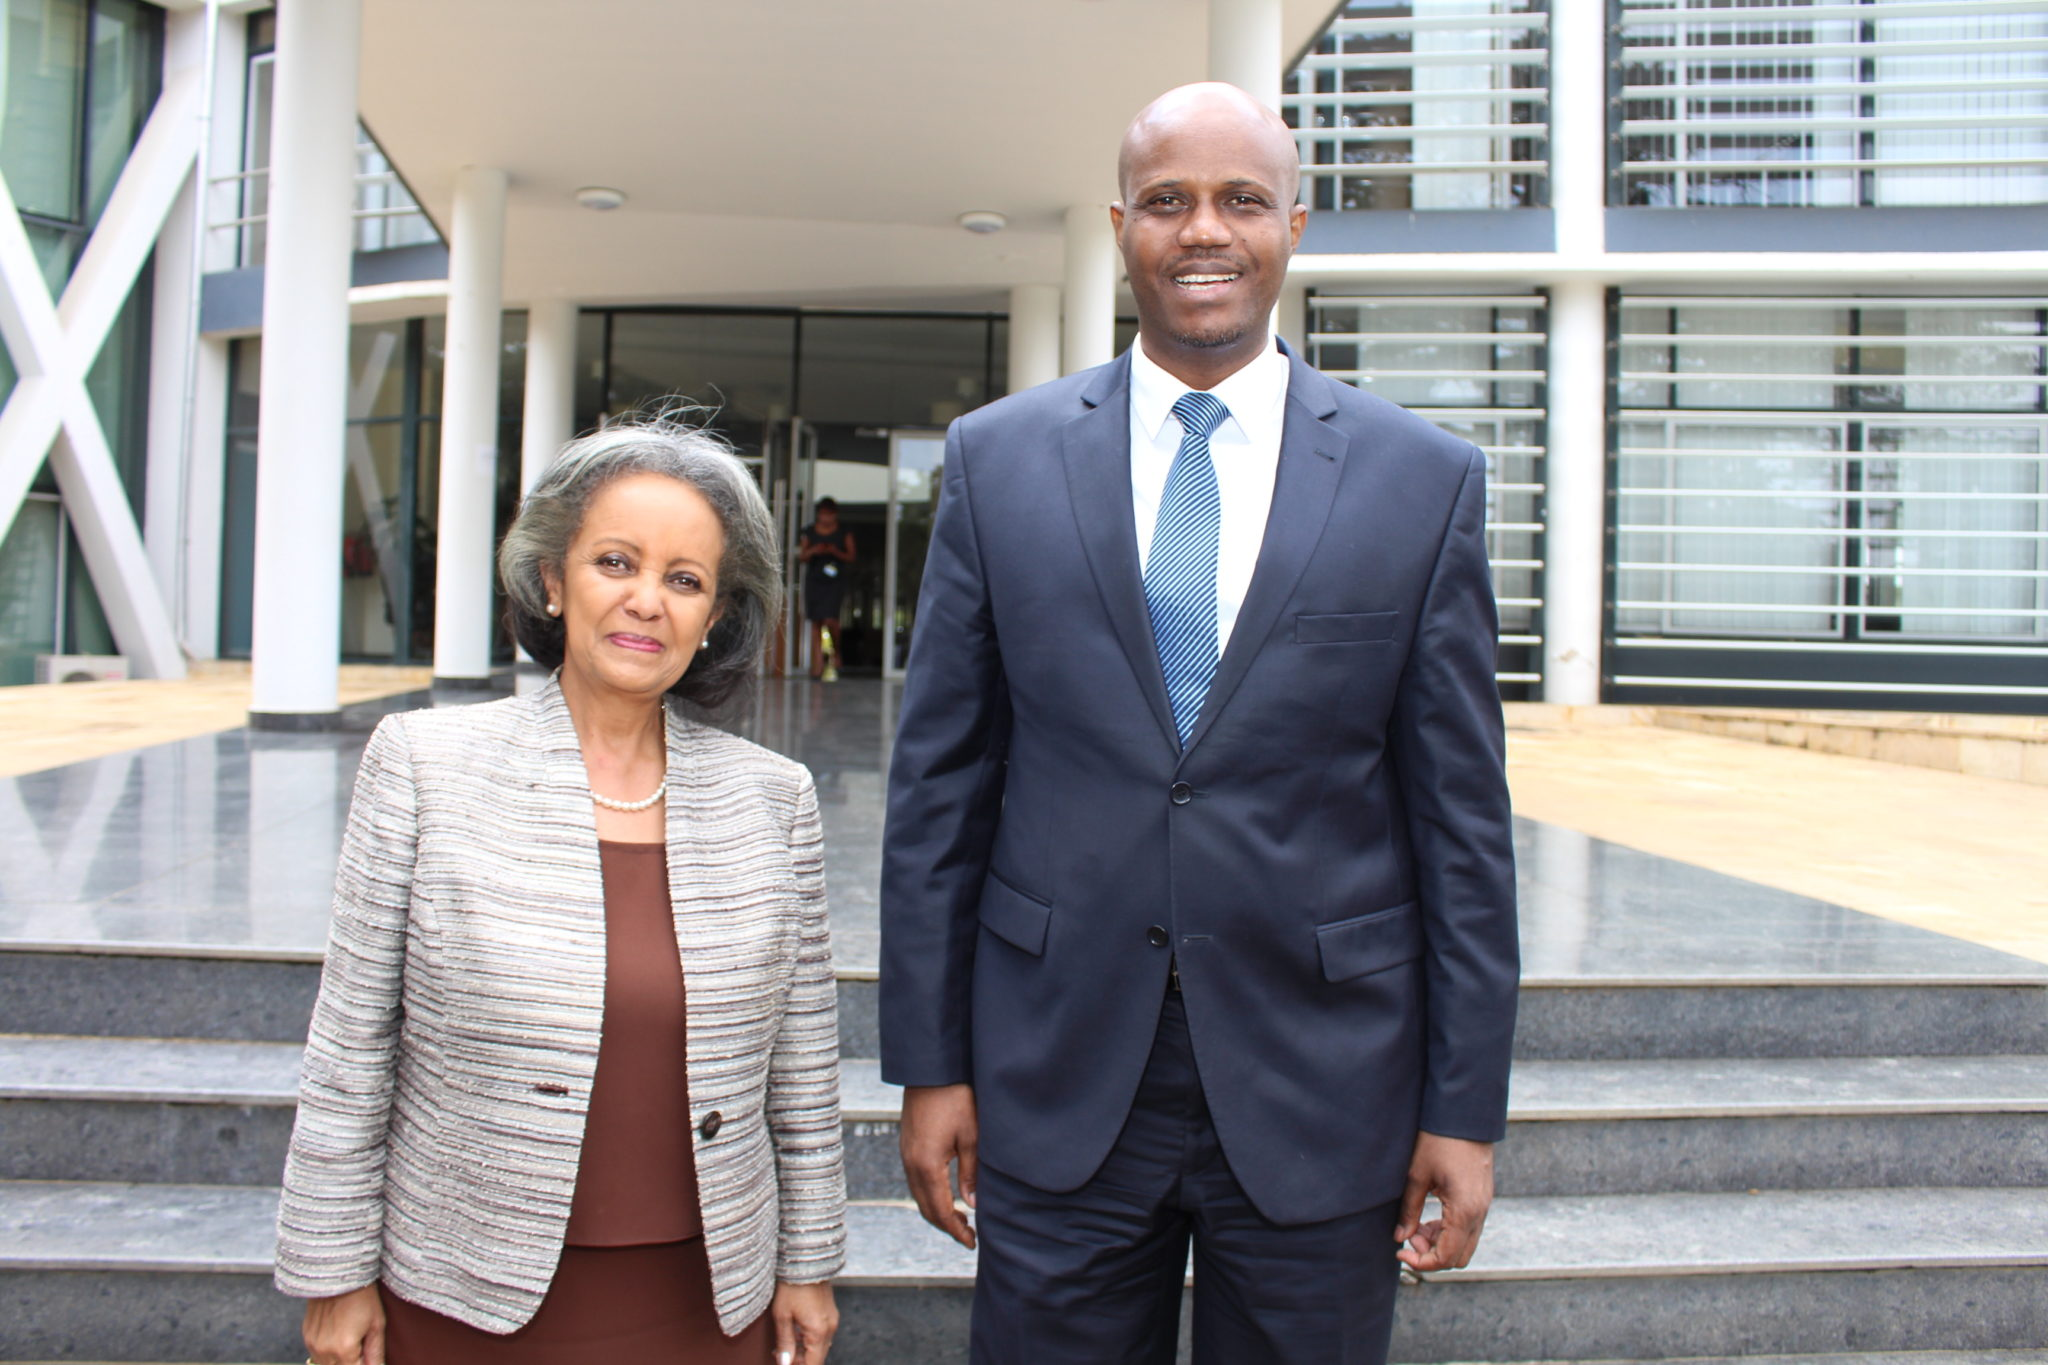 EAC Secretary General Amb. Liberat Mfumukeko with H.E. Sahle-Work Zewde, the Director General of the UN Office in Nairobi outside the EAC Headquarters in Arusha, Tanzania.